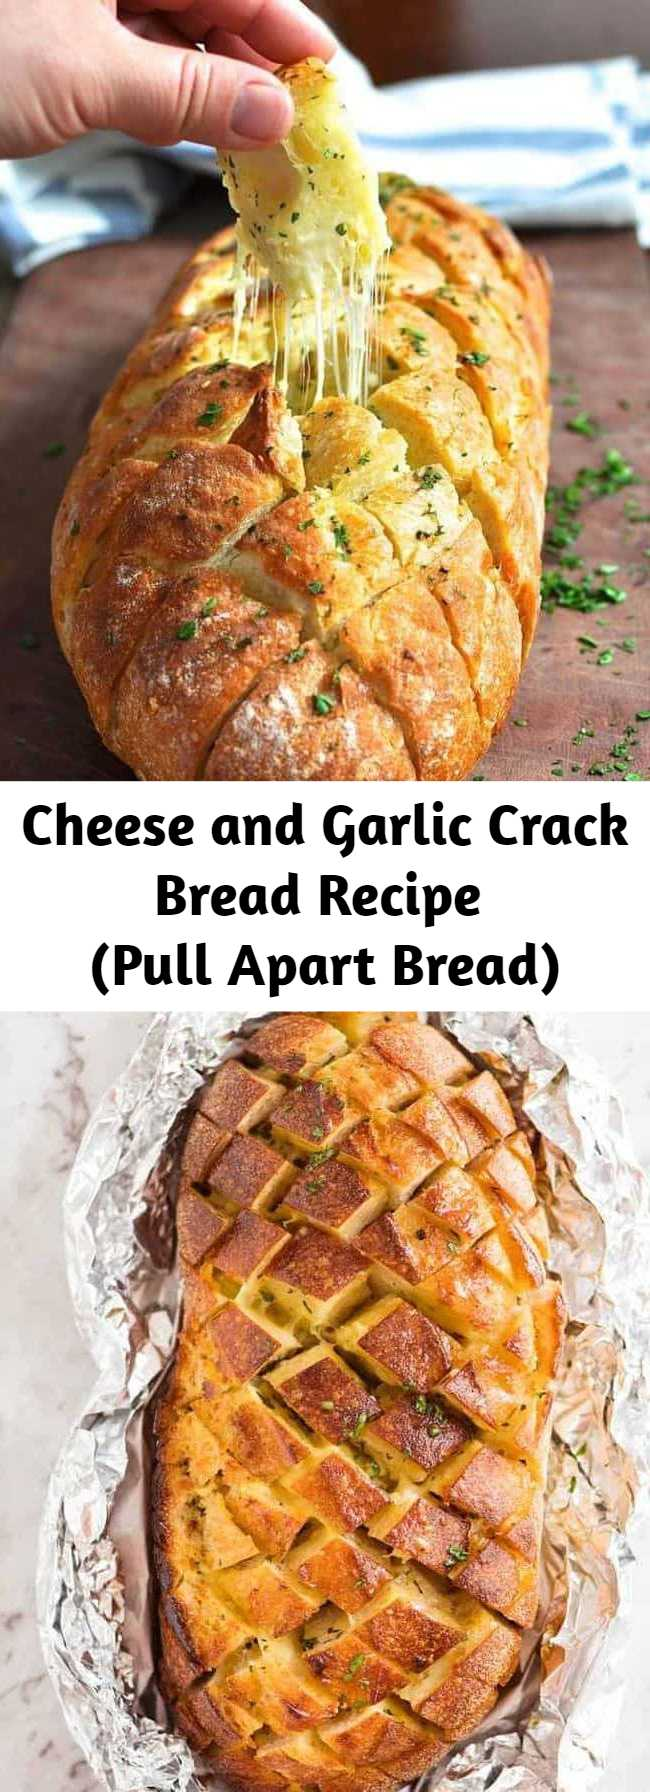 Cheese and Garlic Crack Bread Recipe (Pull Apart Bread) - This is garlic bread - on crack! Great to share with a crowd, or as a centre piece for dinner accompanied by a simple salad.